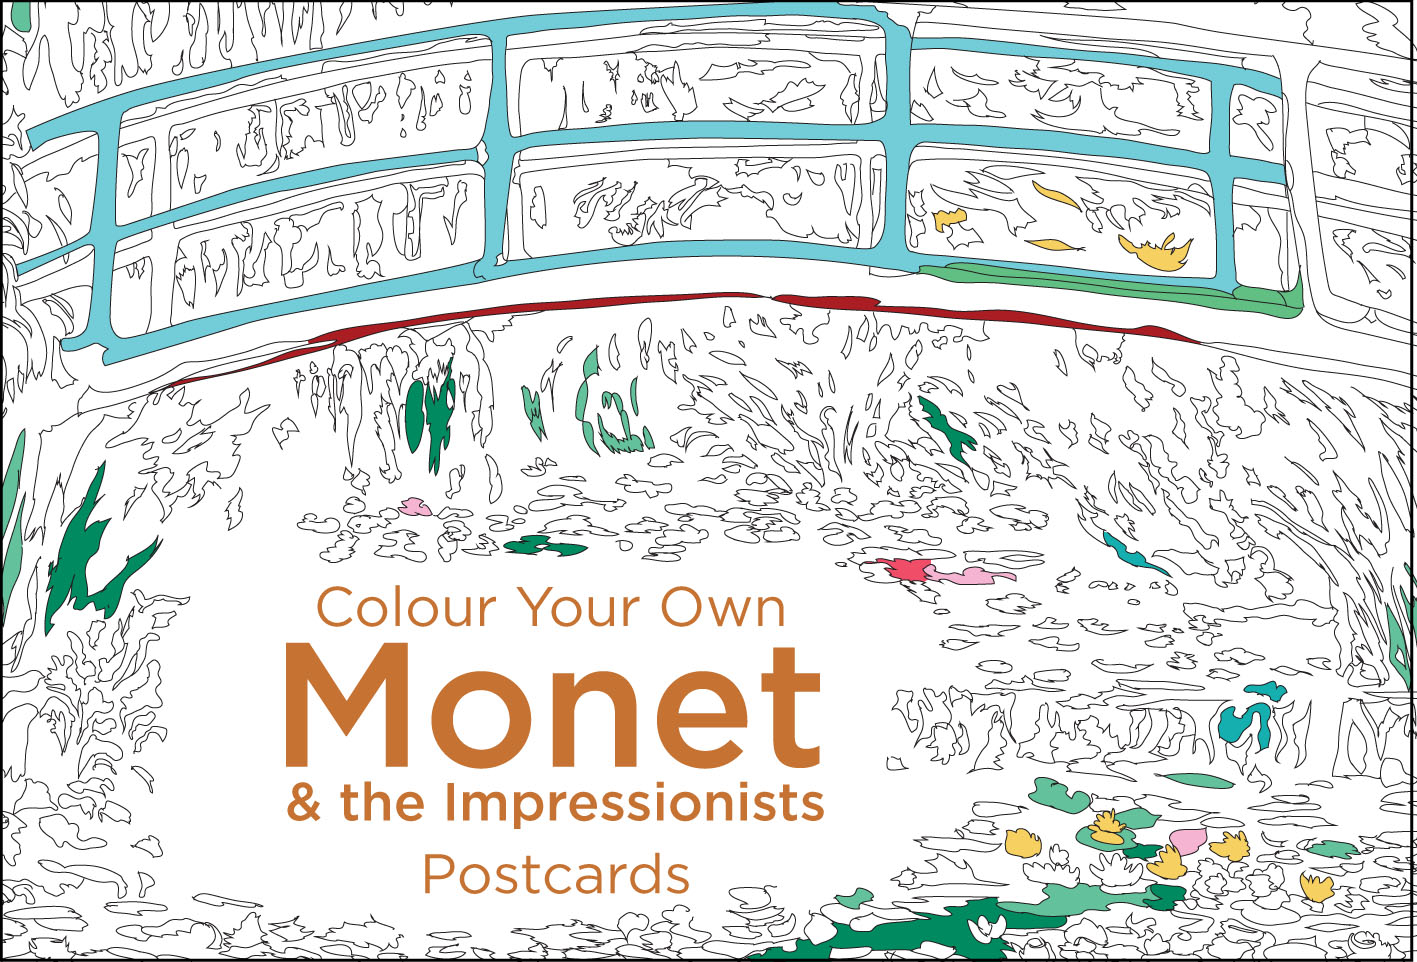 Colour Your Own Monet & the Impressionists Postcard Book